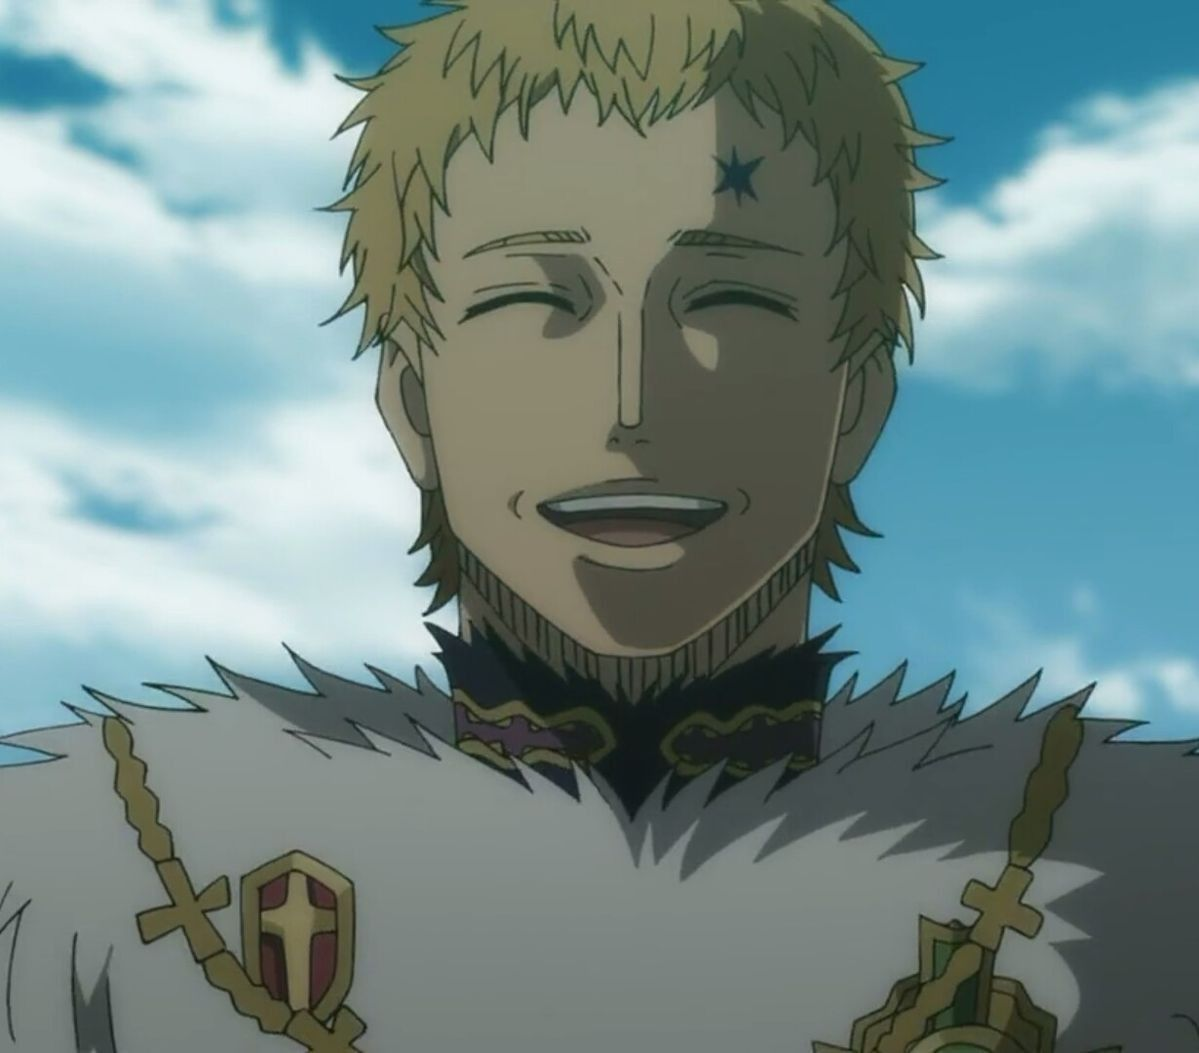 Julius Novachrono Black Clover Black Clover Anime Black Clover Manga Clover ♥️if you love animememes then follow me 📣 30% of the contents owned by me other 70% are stolen 🏆target 2k followers. julius novachrono black clover